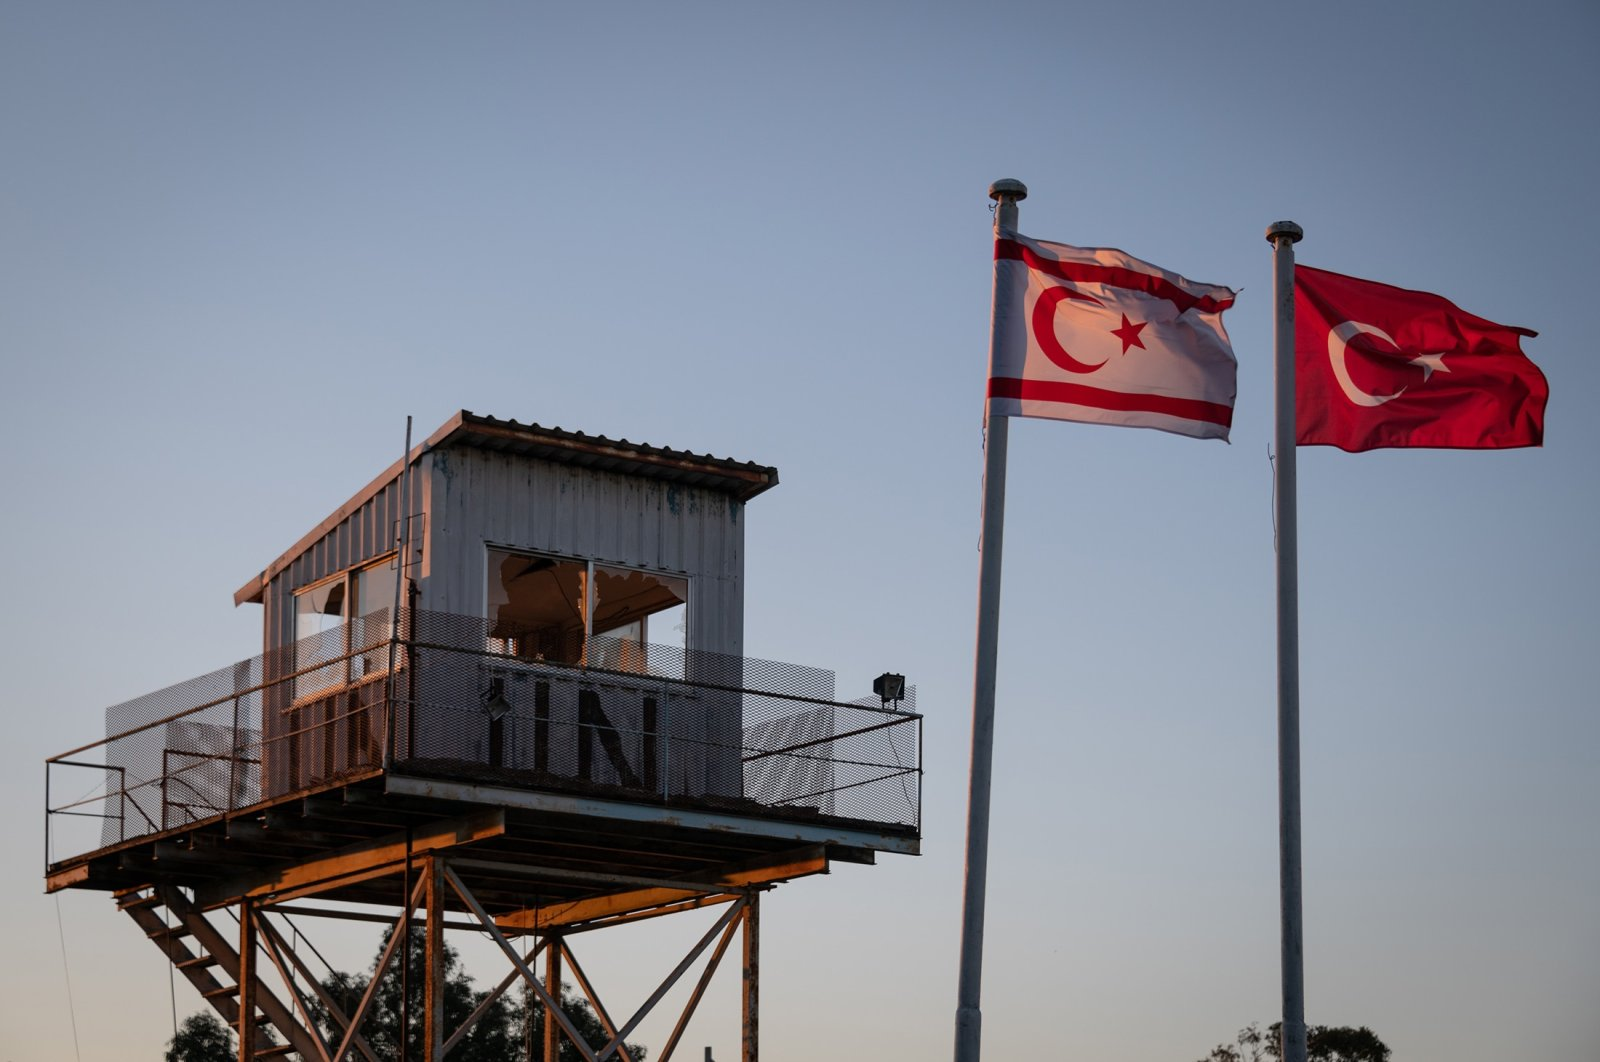 Turkish and Turkish Cypriot flags wave in the wind near an abandoned observation tower on the green line in Nicosia, (Lefkoşa), TRNC, April 21, 2019. (Getty Images)